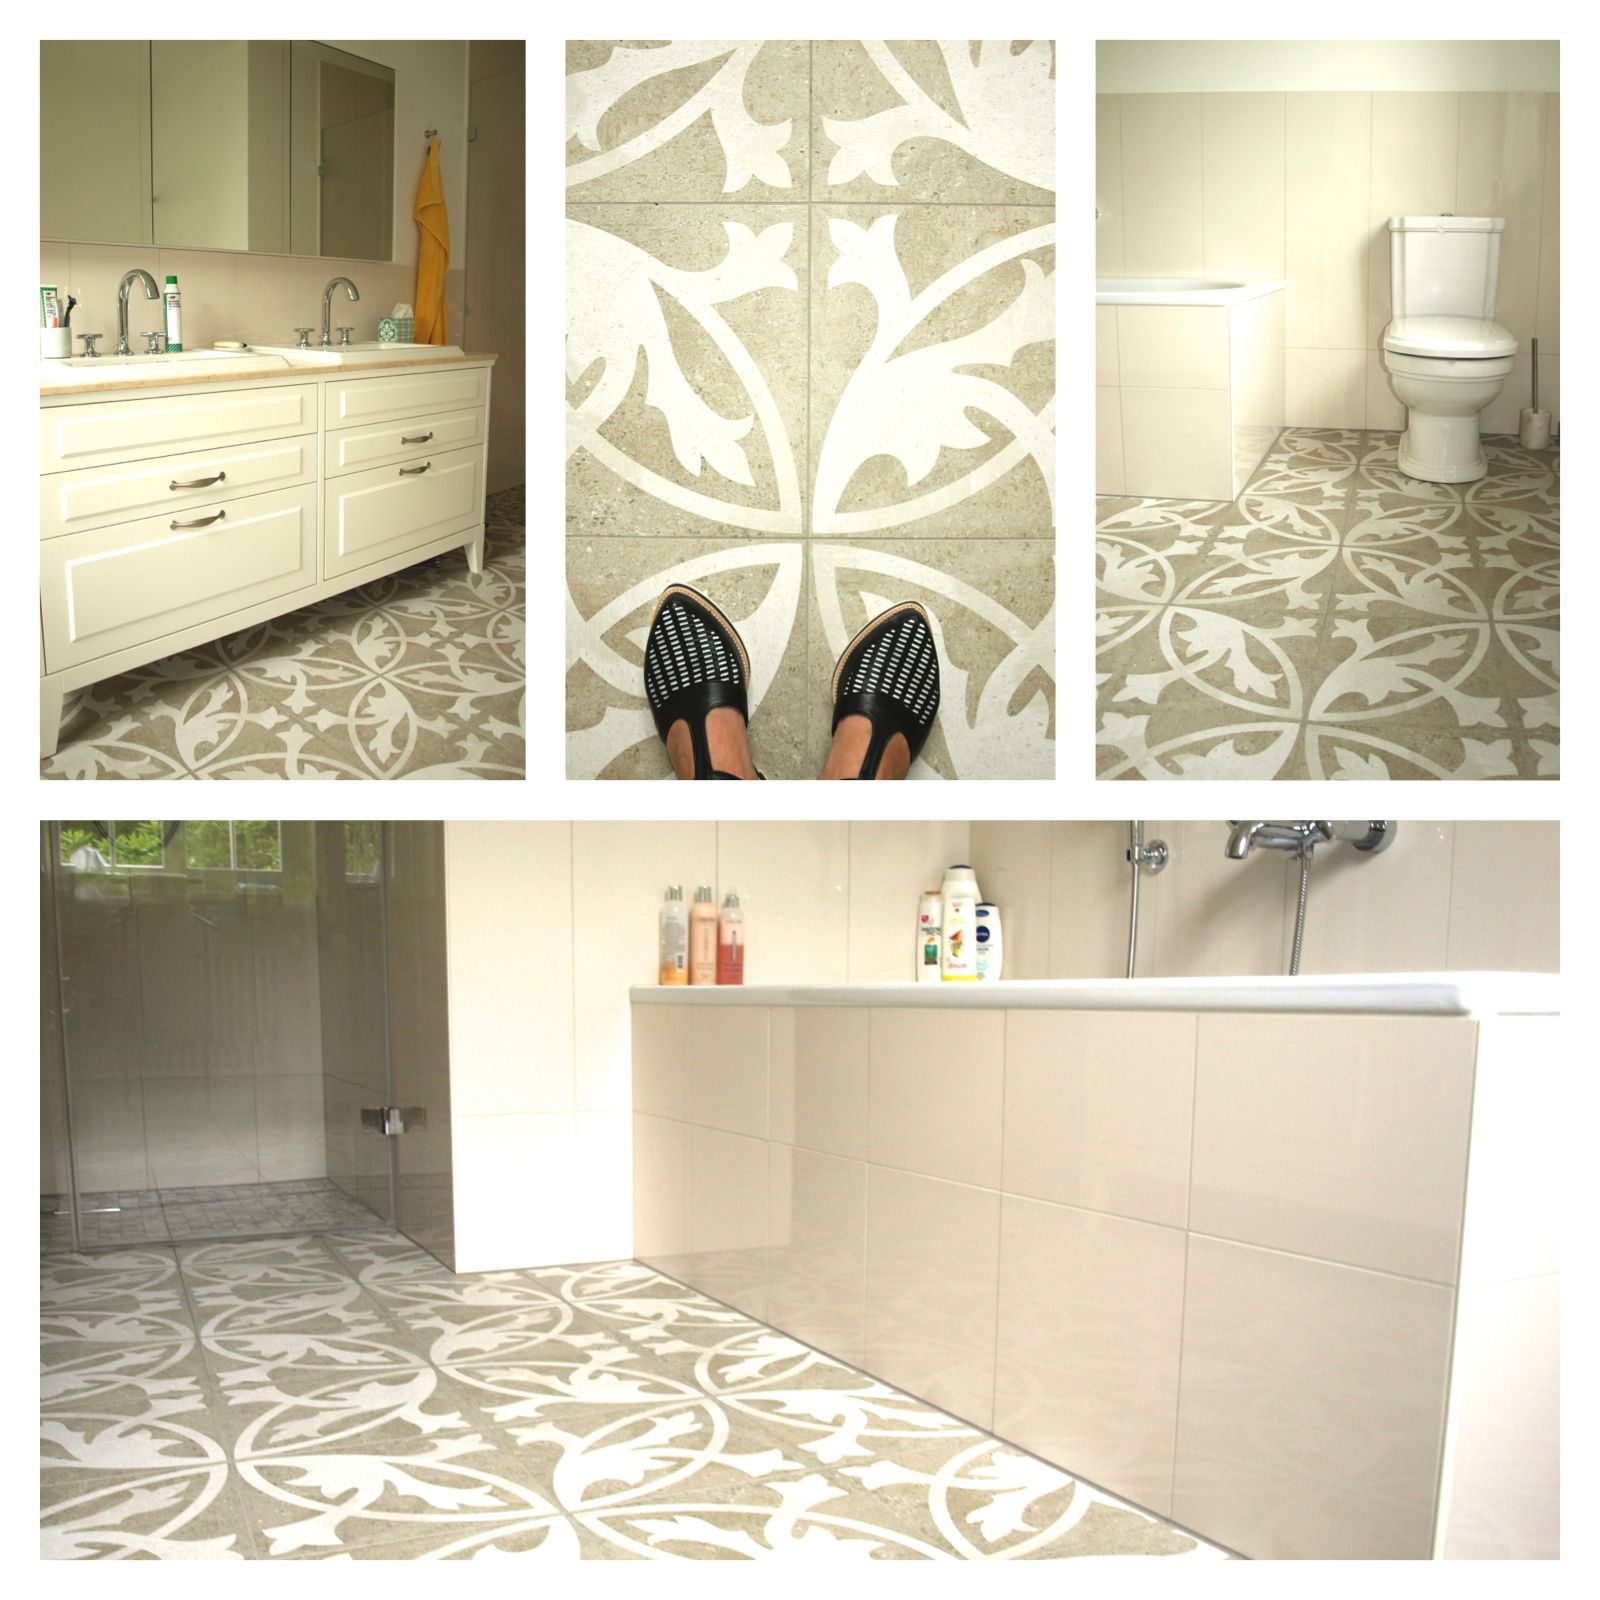 Badezimmer Fliesen Zürich Project With Aparici Retro Tiles For A Master Bathroom Near Zurich